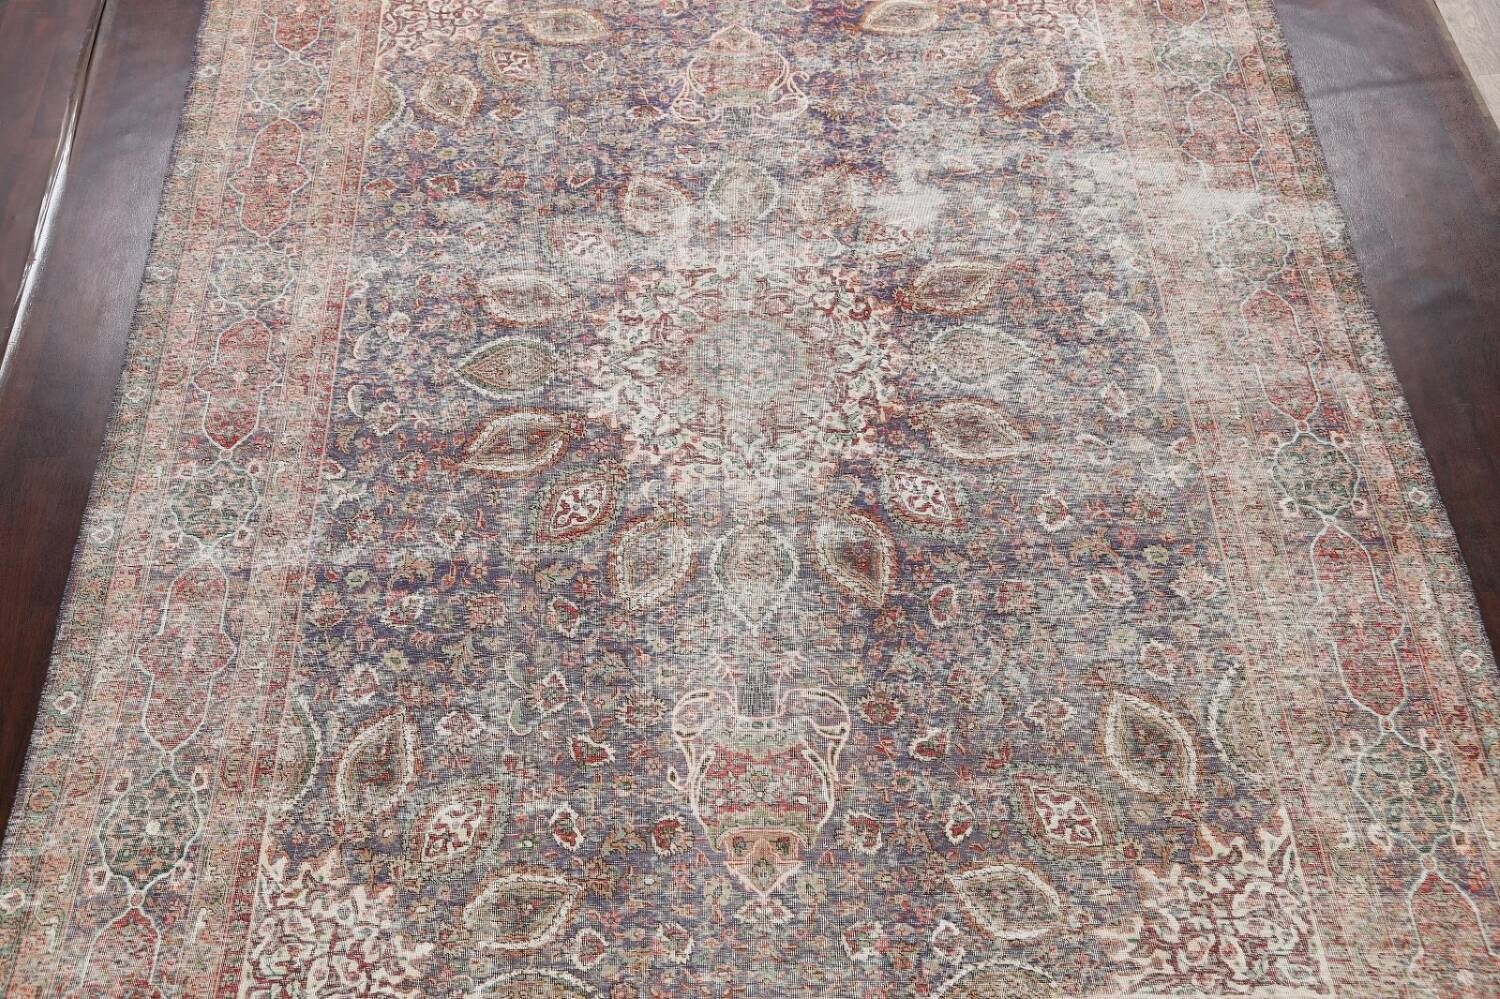 Antique Distressed Floral Tabriz Persian Area Rug 10x13 image 3